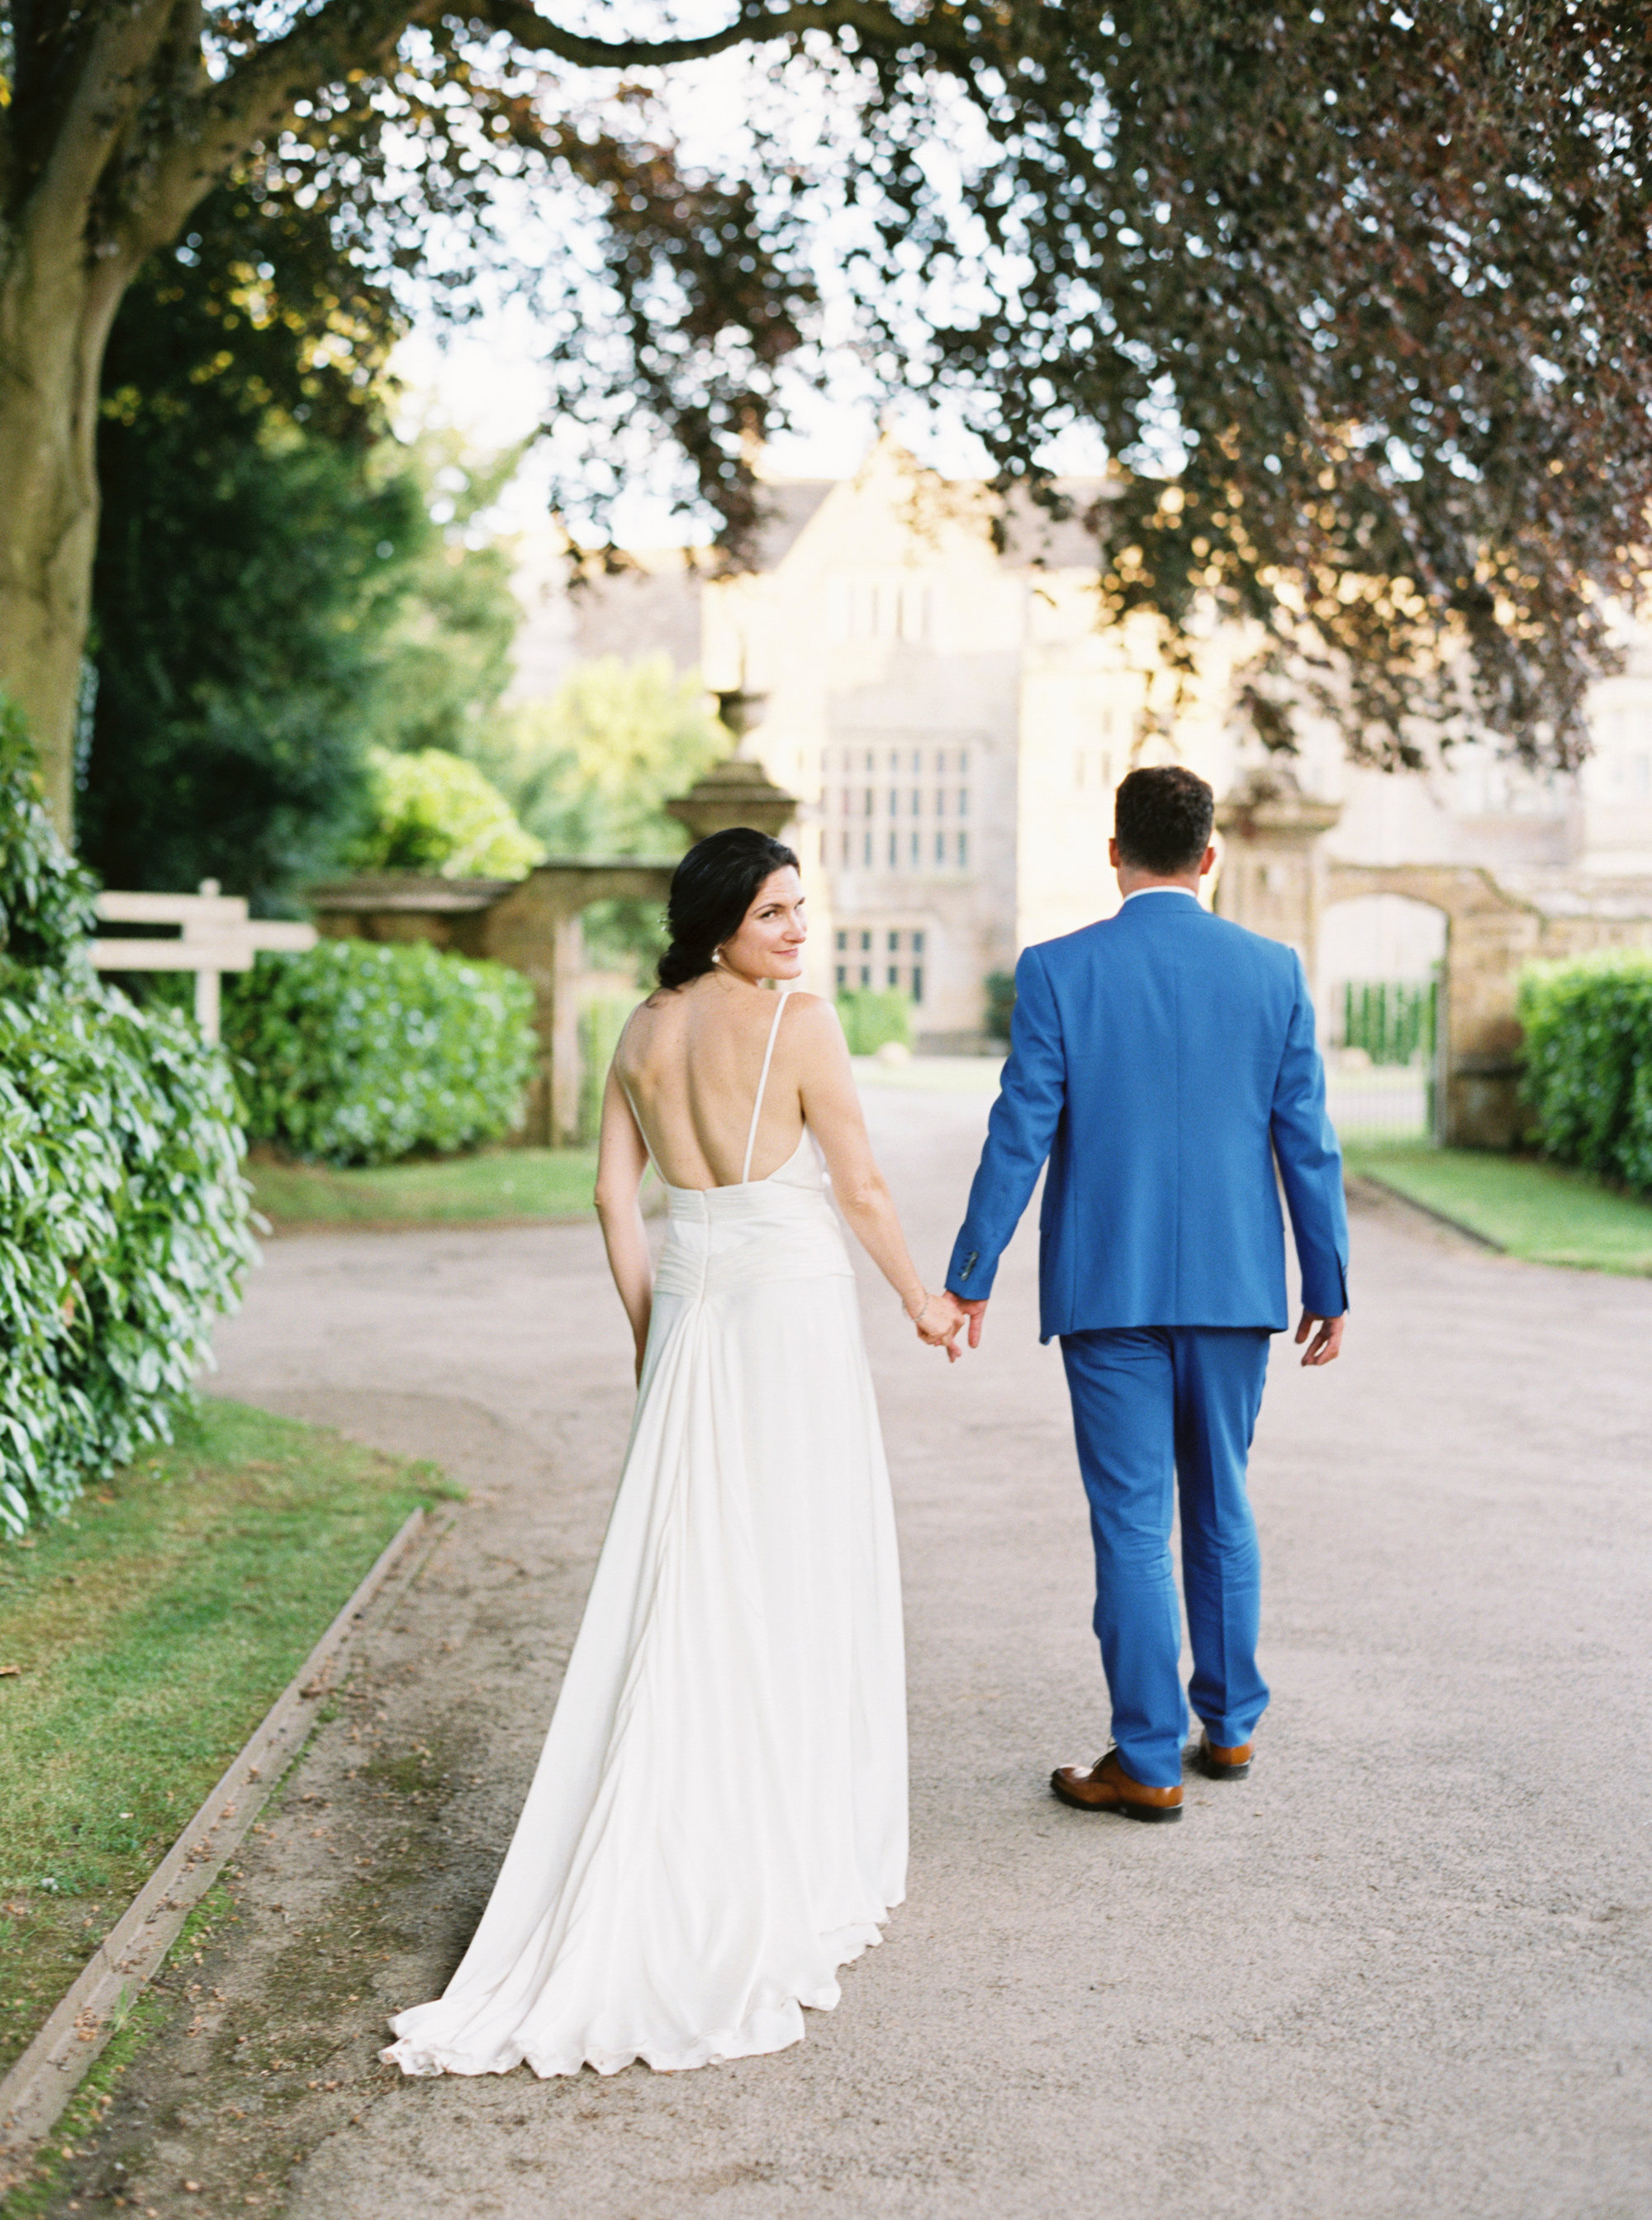 Luxury Wedding Planner UK | Jennifer & Timothy's English Country Manor Wedding | Soft Pink Pale Blue White and Silver Toned Green Neutral Tones American Bride North Cadbury Court | Nicole Colwell Photography  0066.jpg